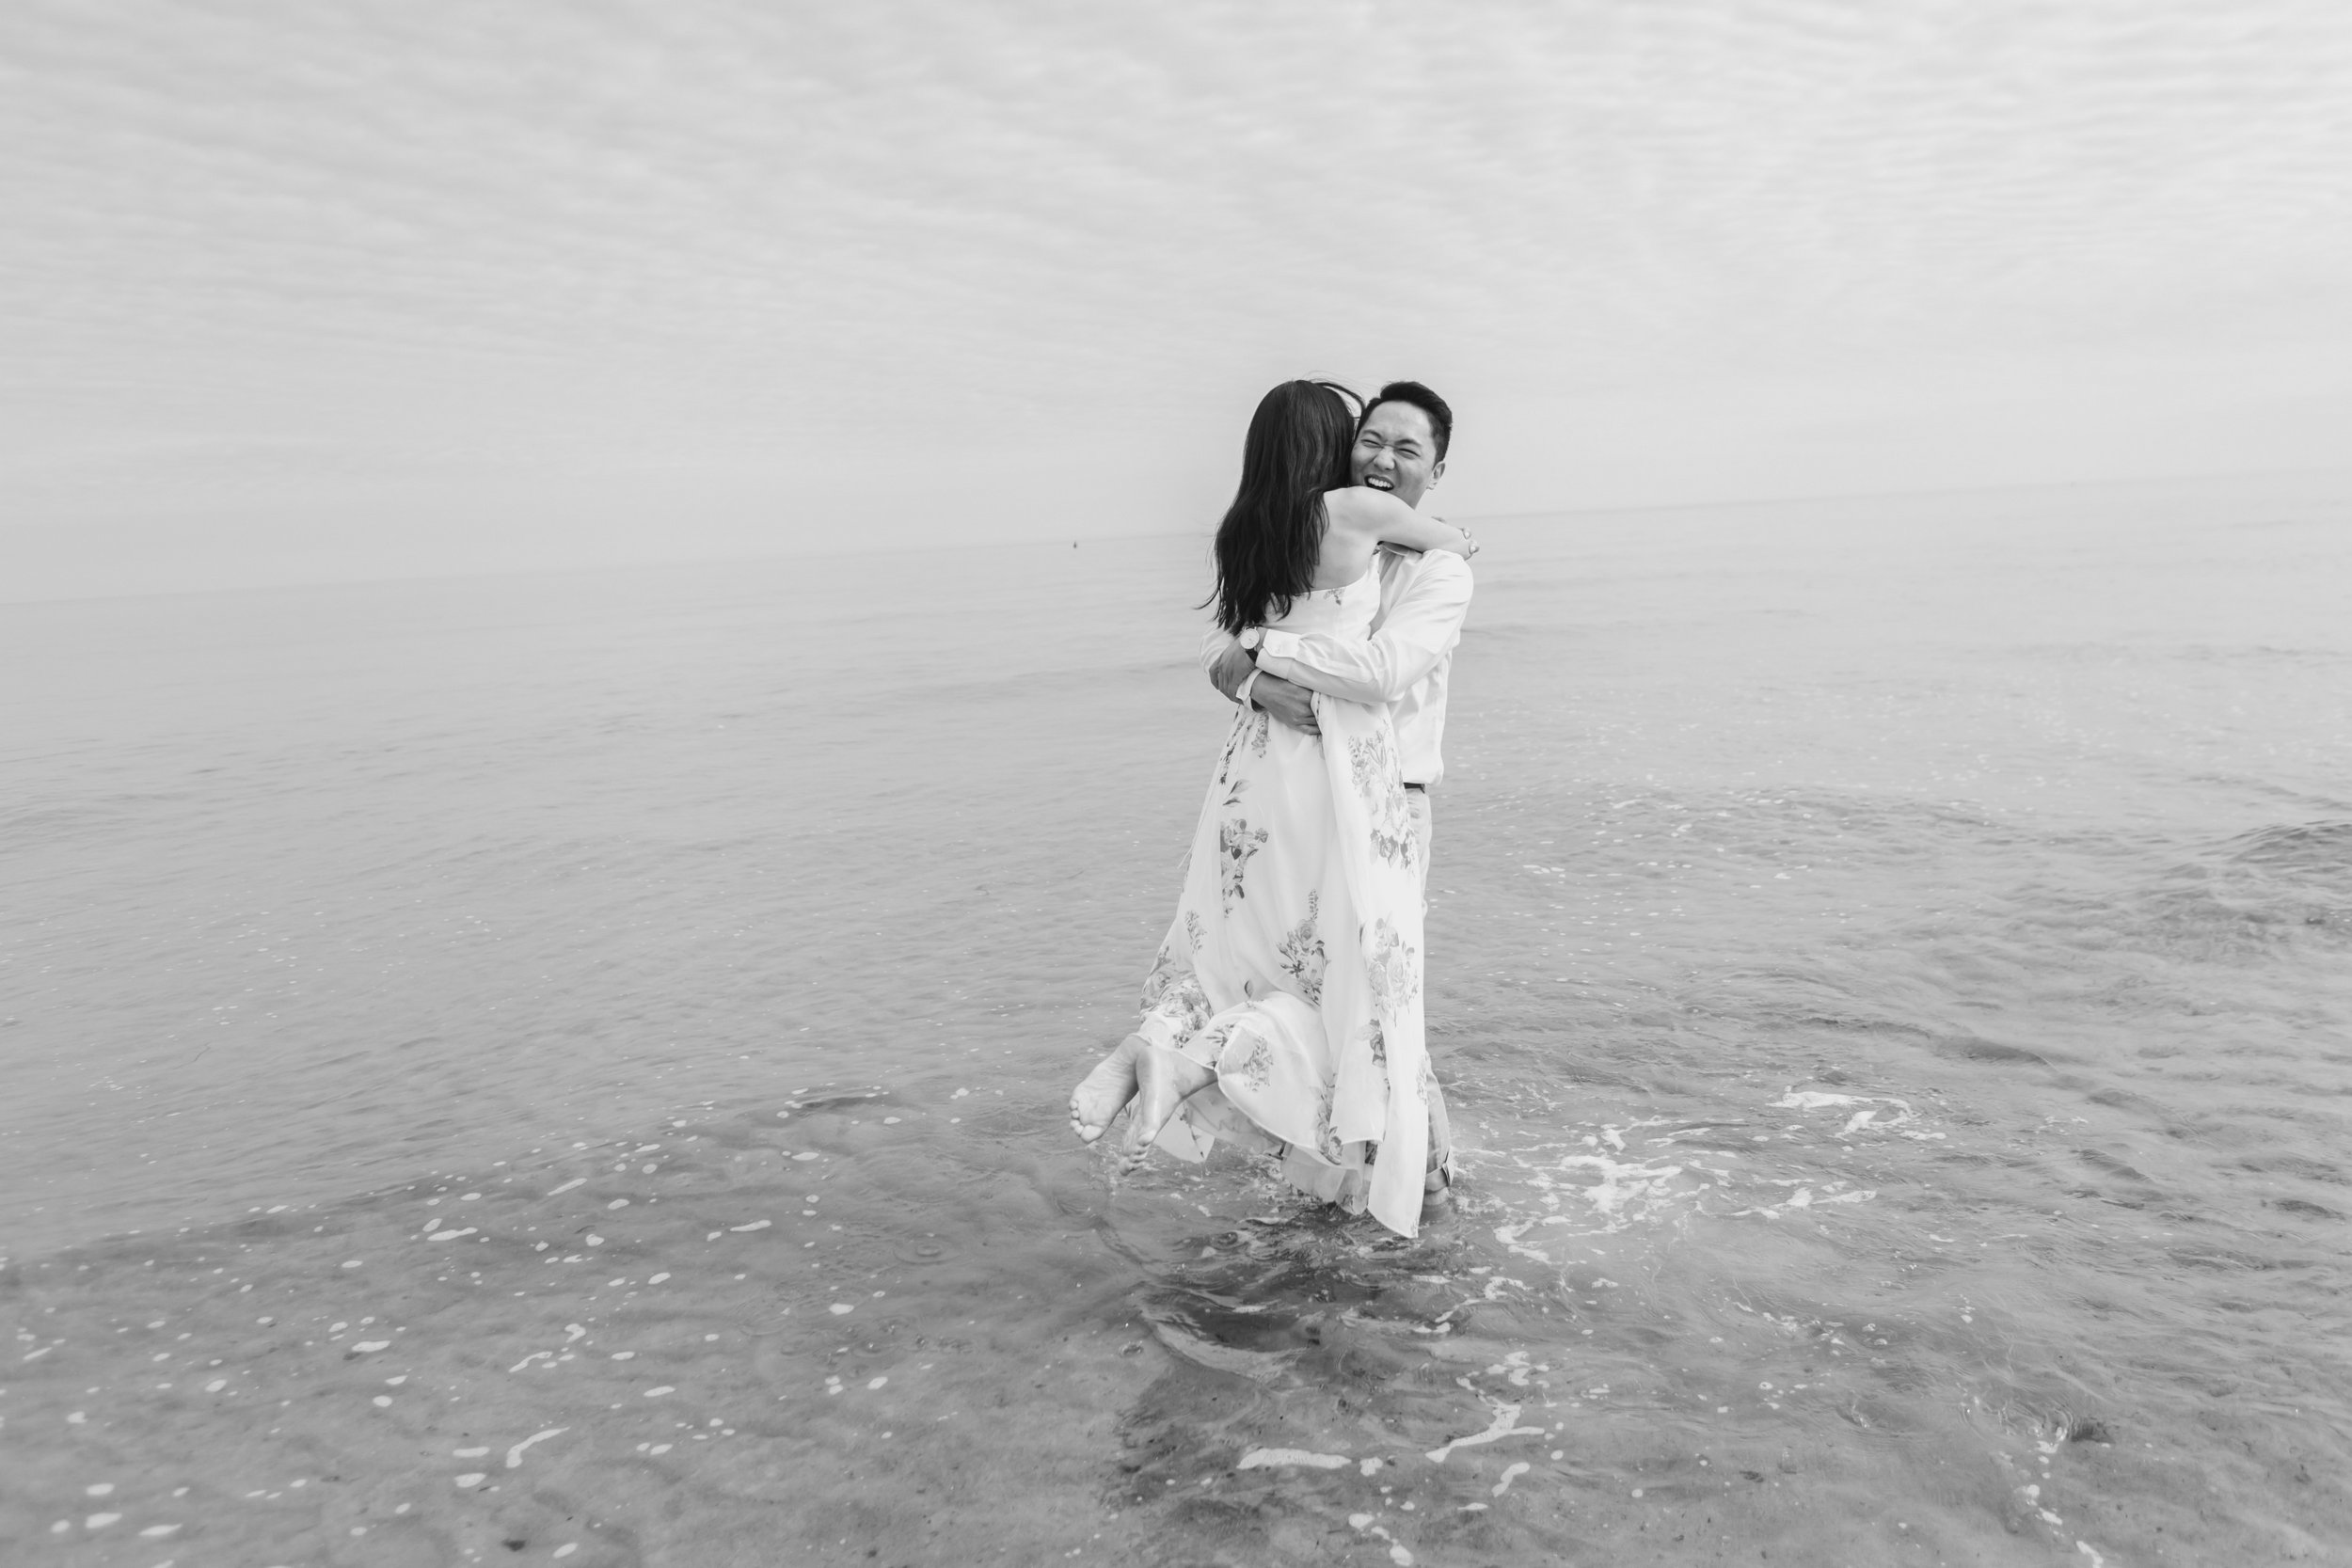 Crane-Beach-Engagement-Wedding-Lena-Mirisola-13.JPG